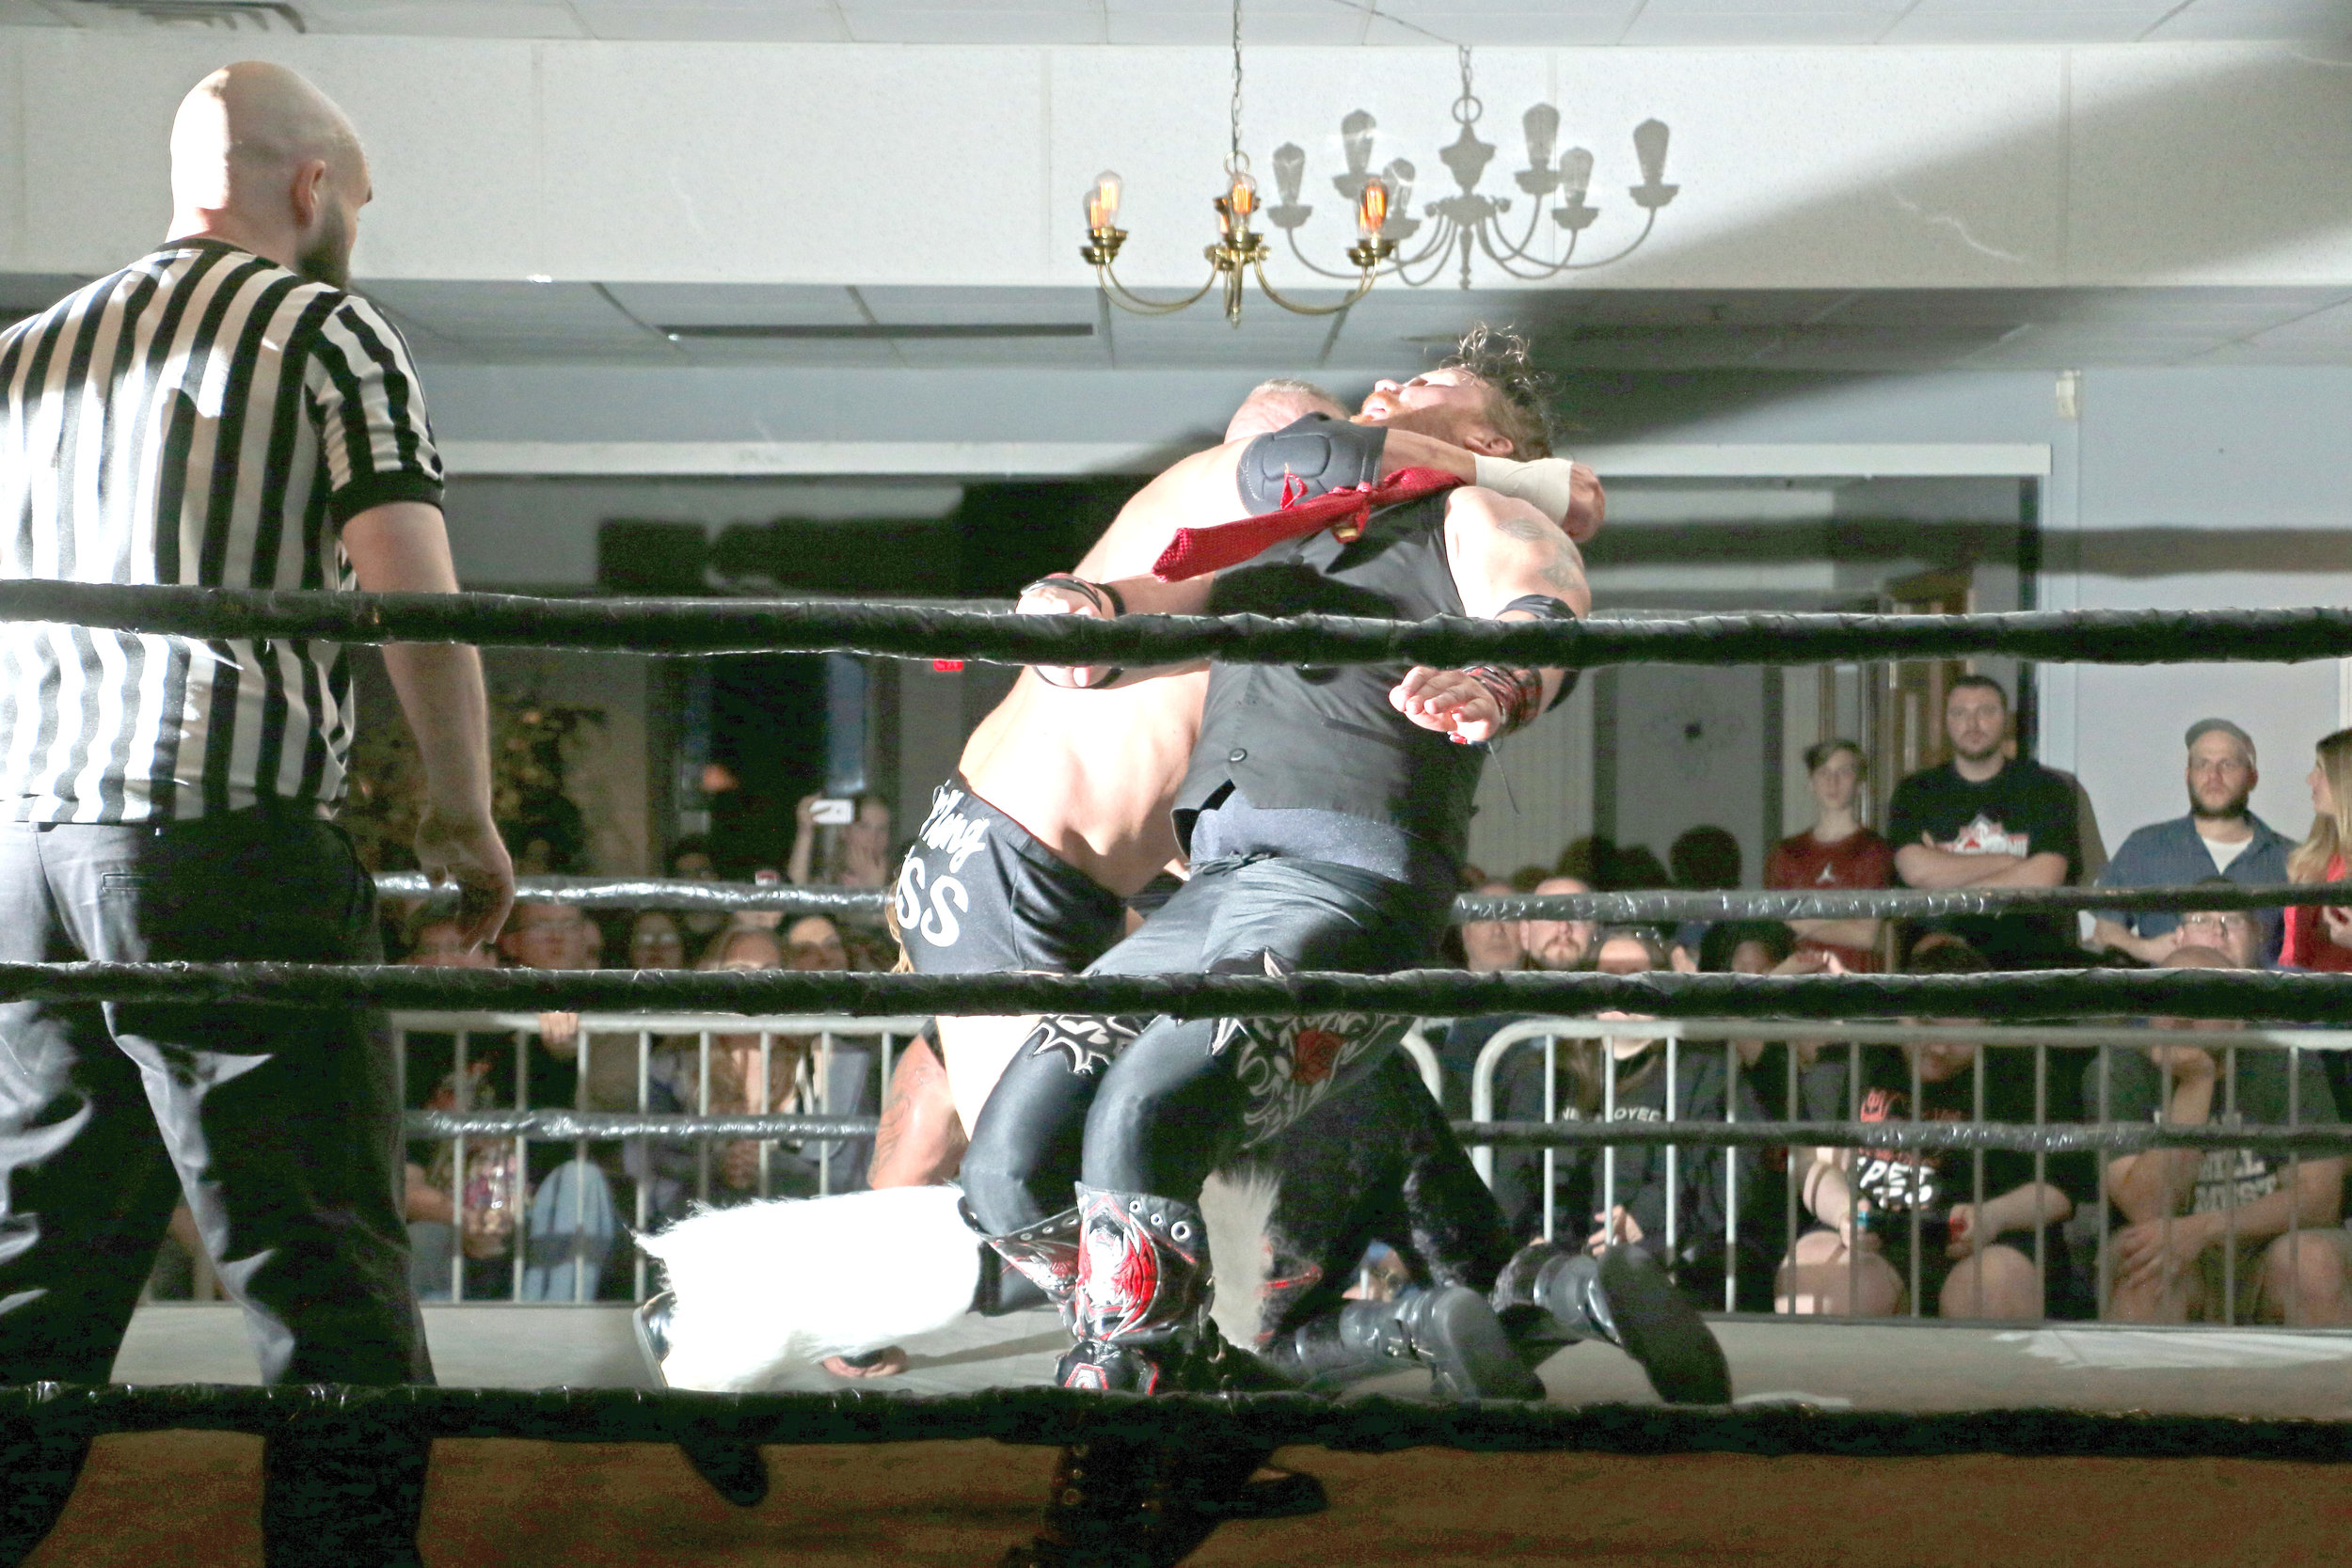 Ryan Kross clotheslines Kevin Thorn during the tag-team main event.